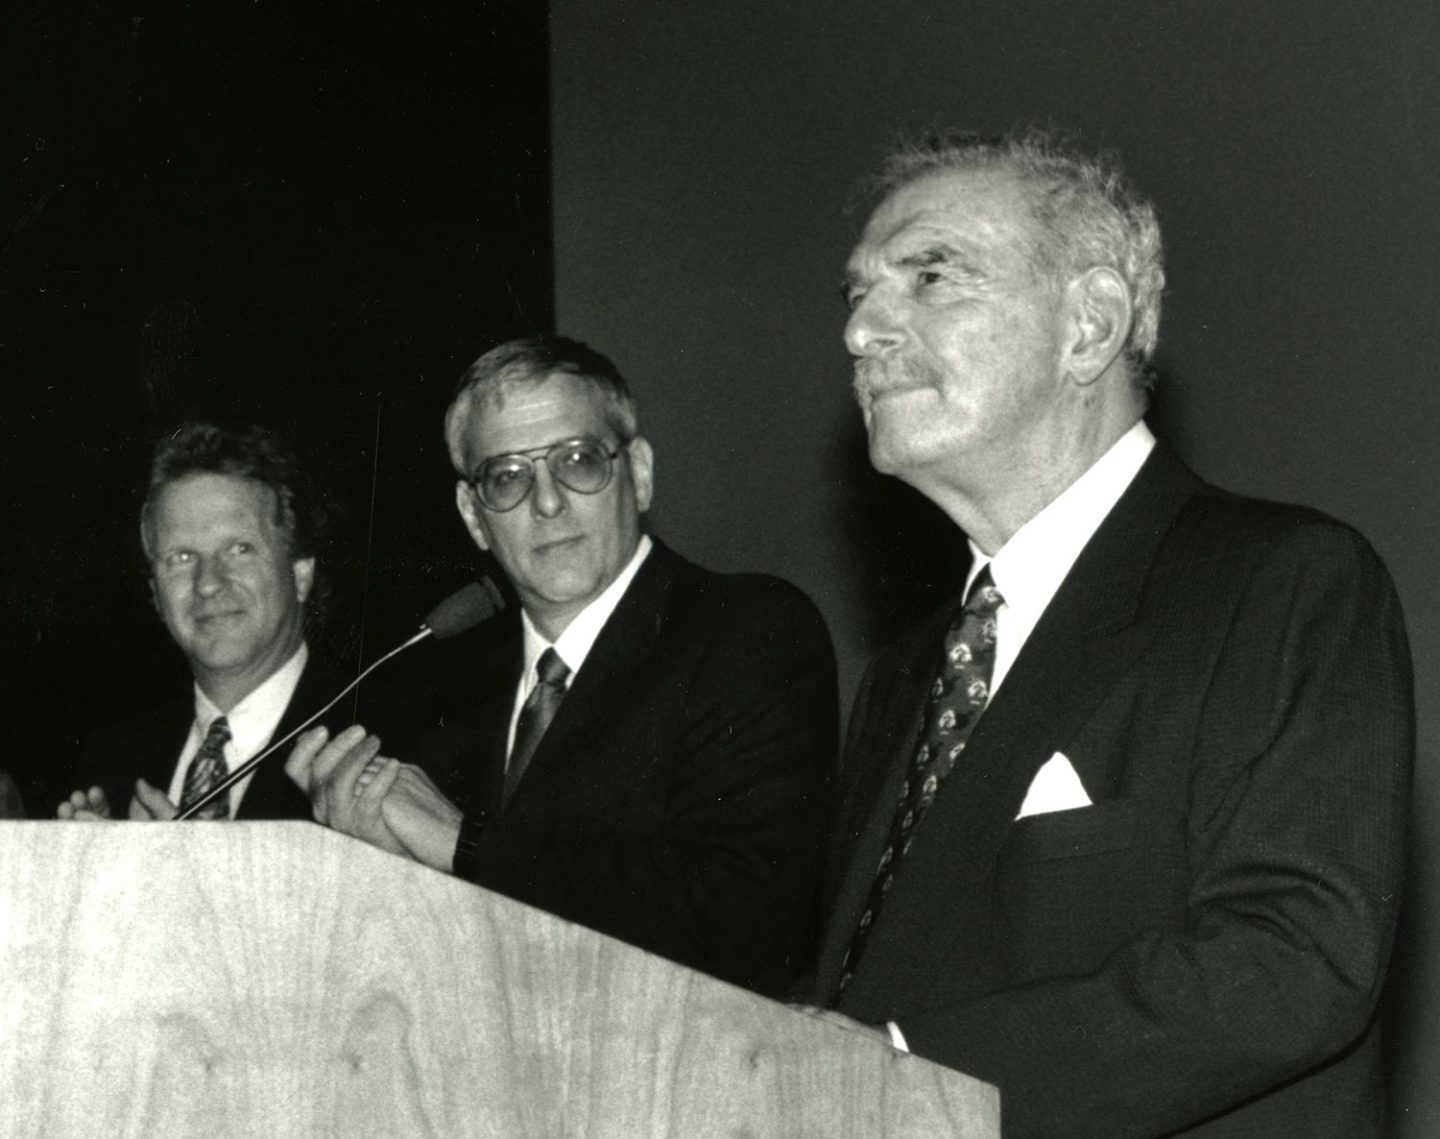 Left to right:Bruce Wands, Chair of SVA MFA Computer Art, David Rhodes, President of SVA, Silas H. Rhodes, Founder and Chairman of the Board of SVA,  circa 1990.